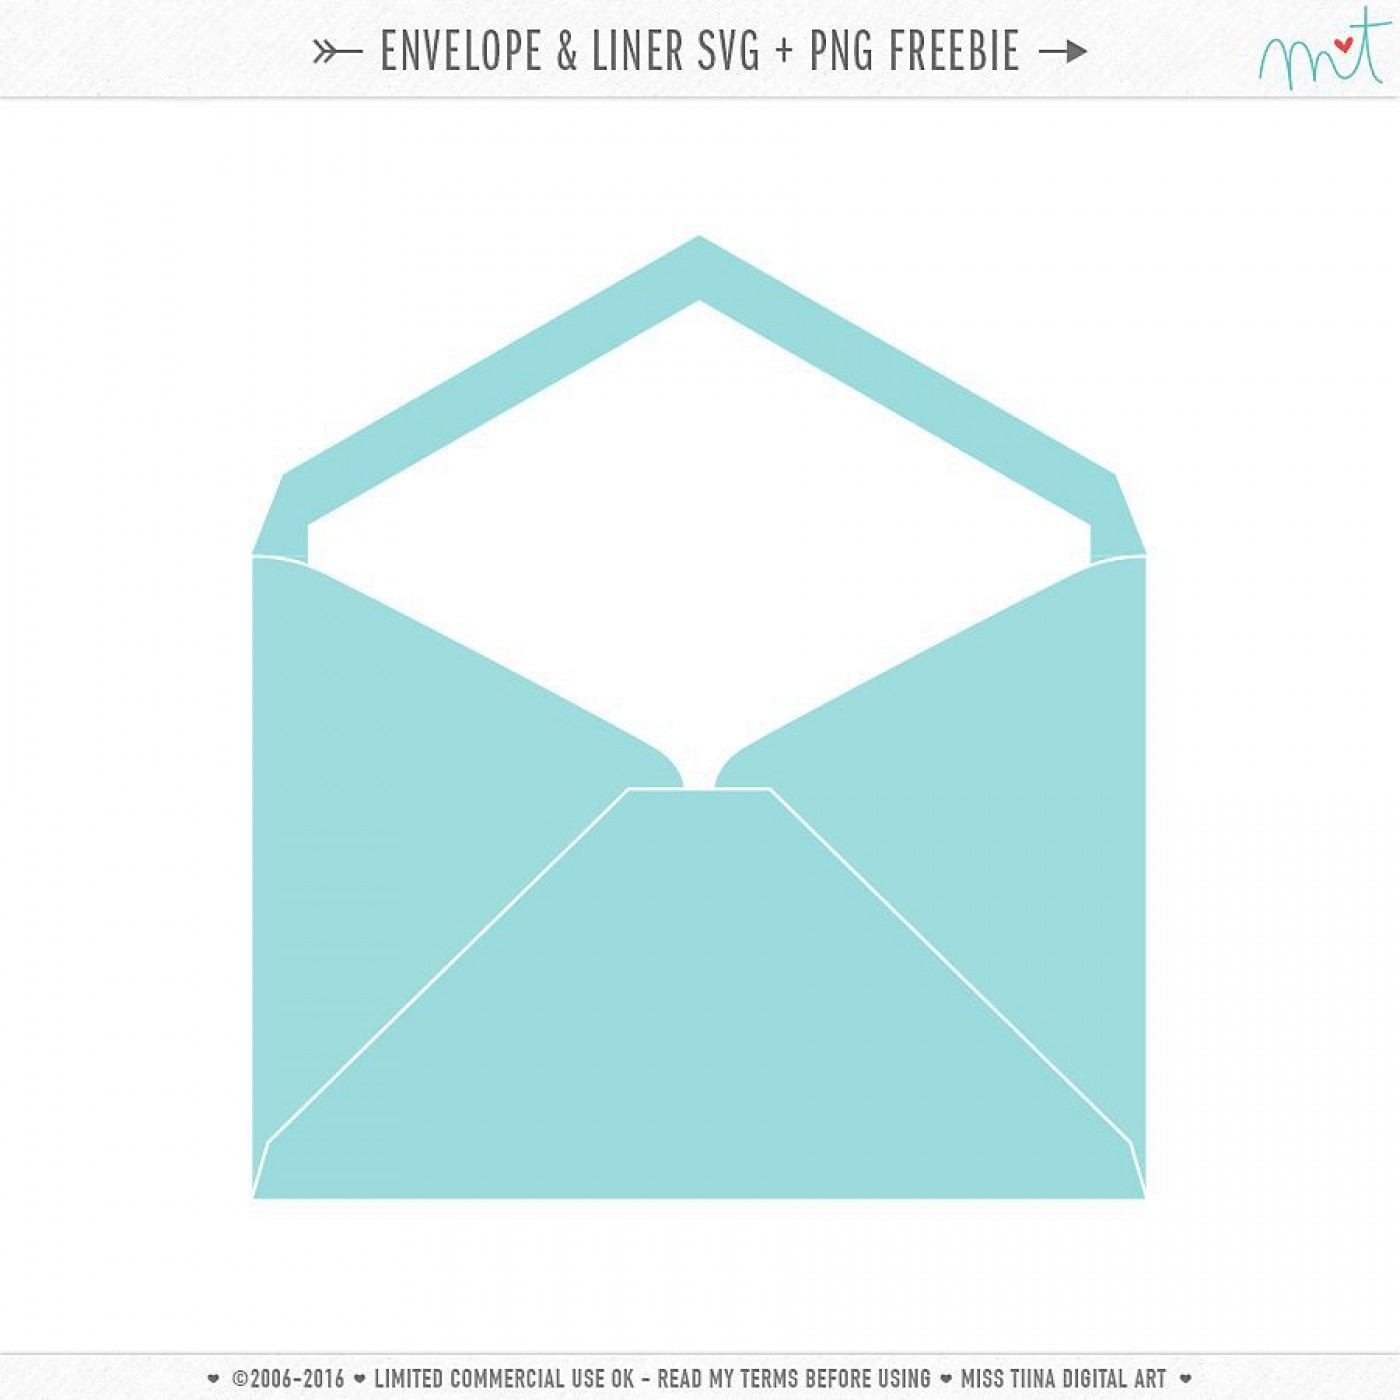 008 Unique A7 Envelope Liner Template Free Highest Quality 1400